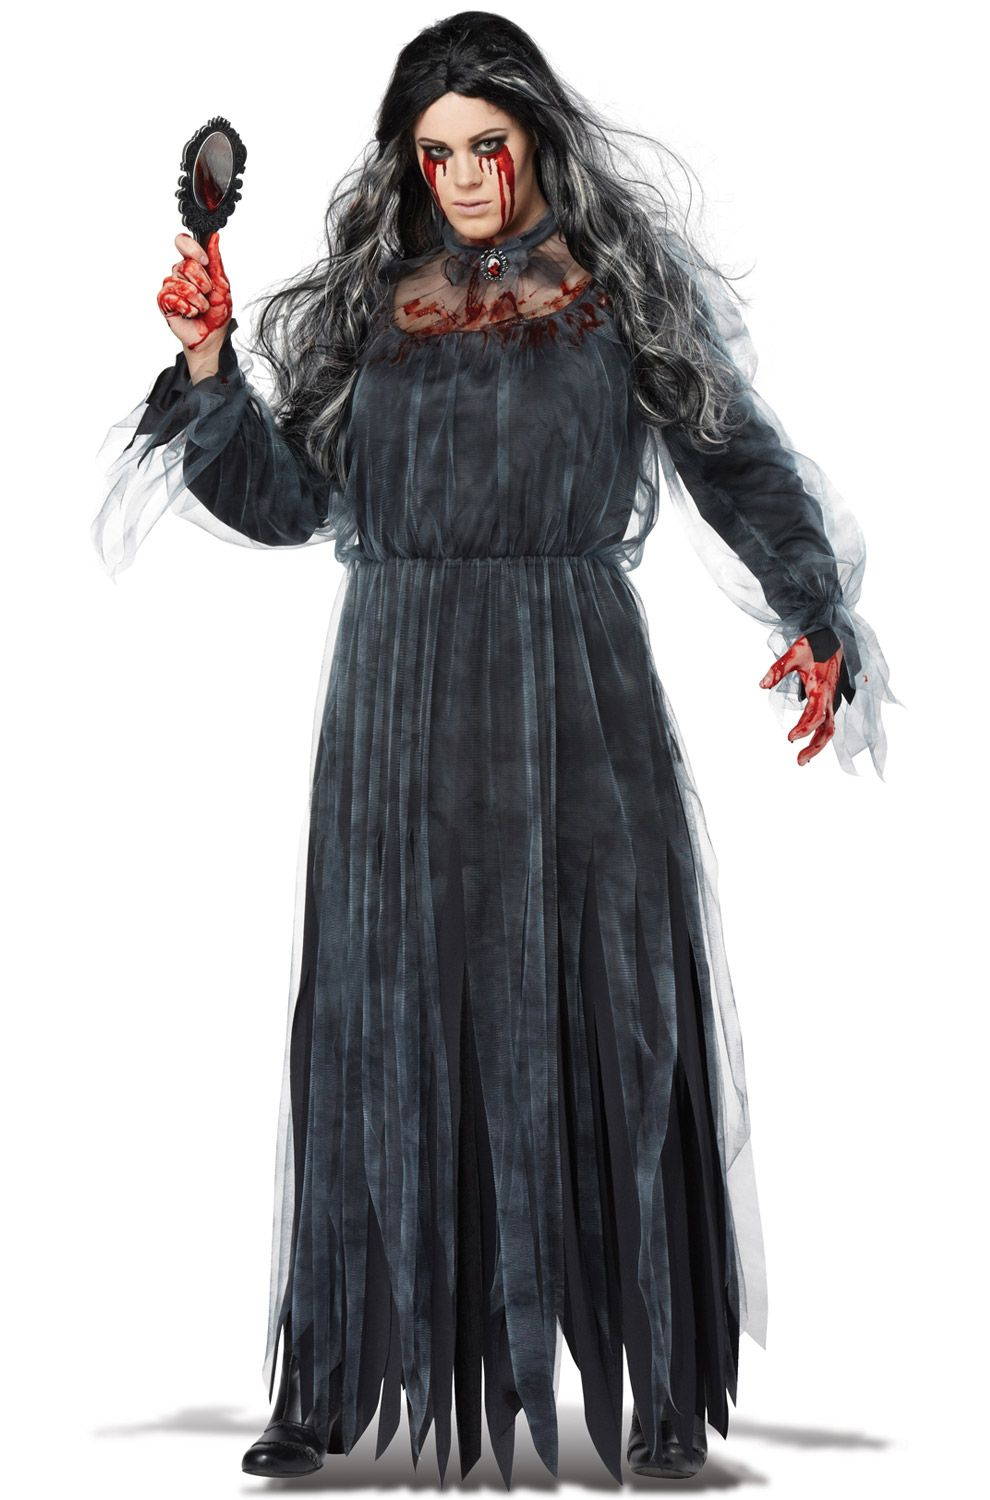 682af08fef0f2 Bloody Mary Plus Size Costume | Become Another Person | Plus size ...